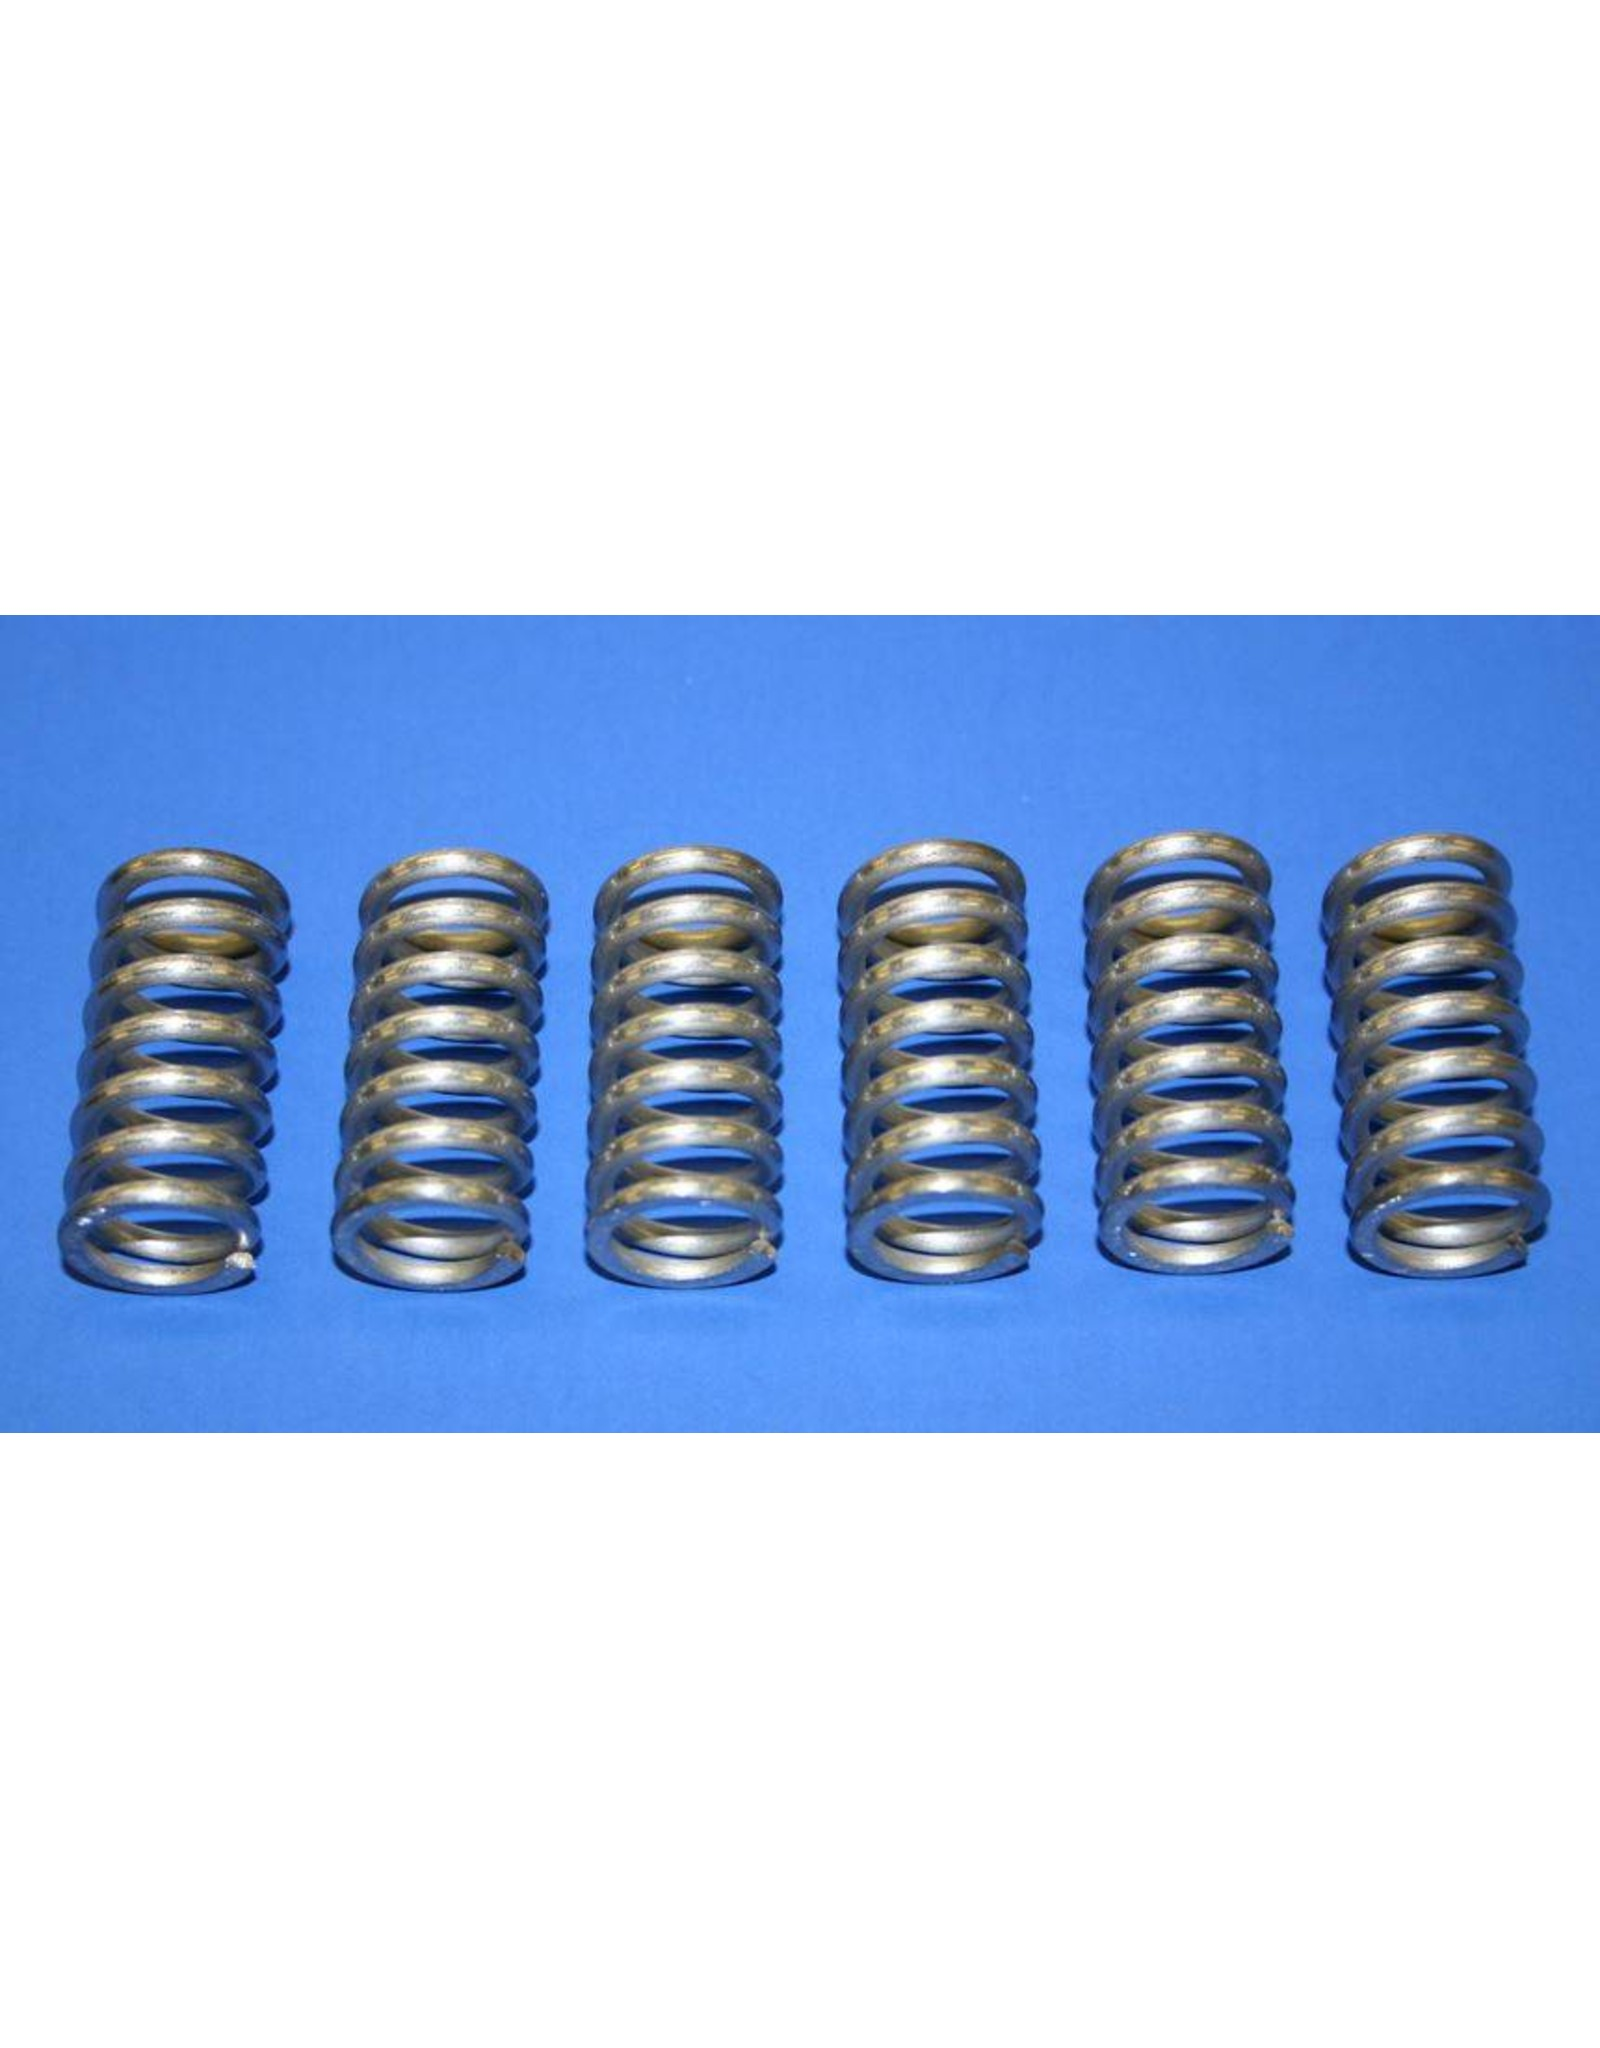 KMT Style Spring Kit, Normally Closed Pneumatic Valve, Six Springs, SS